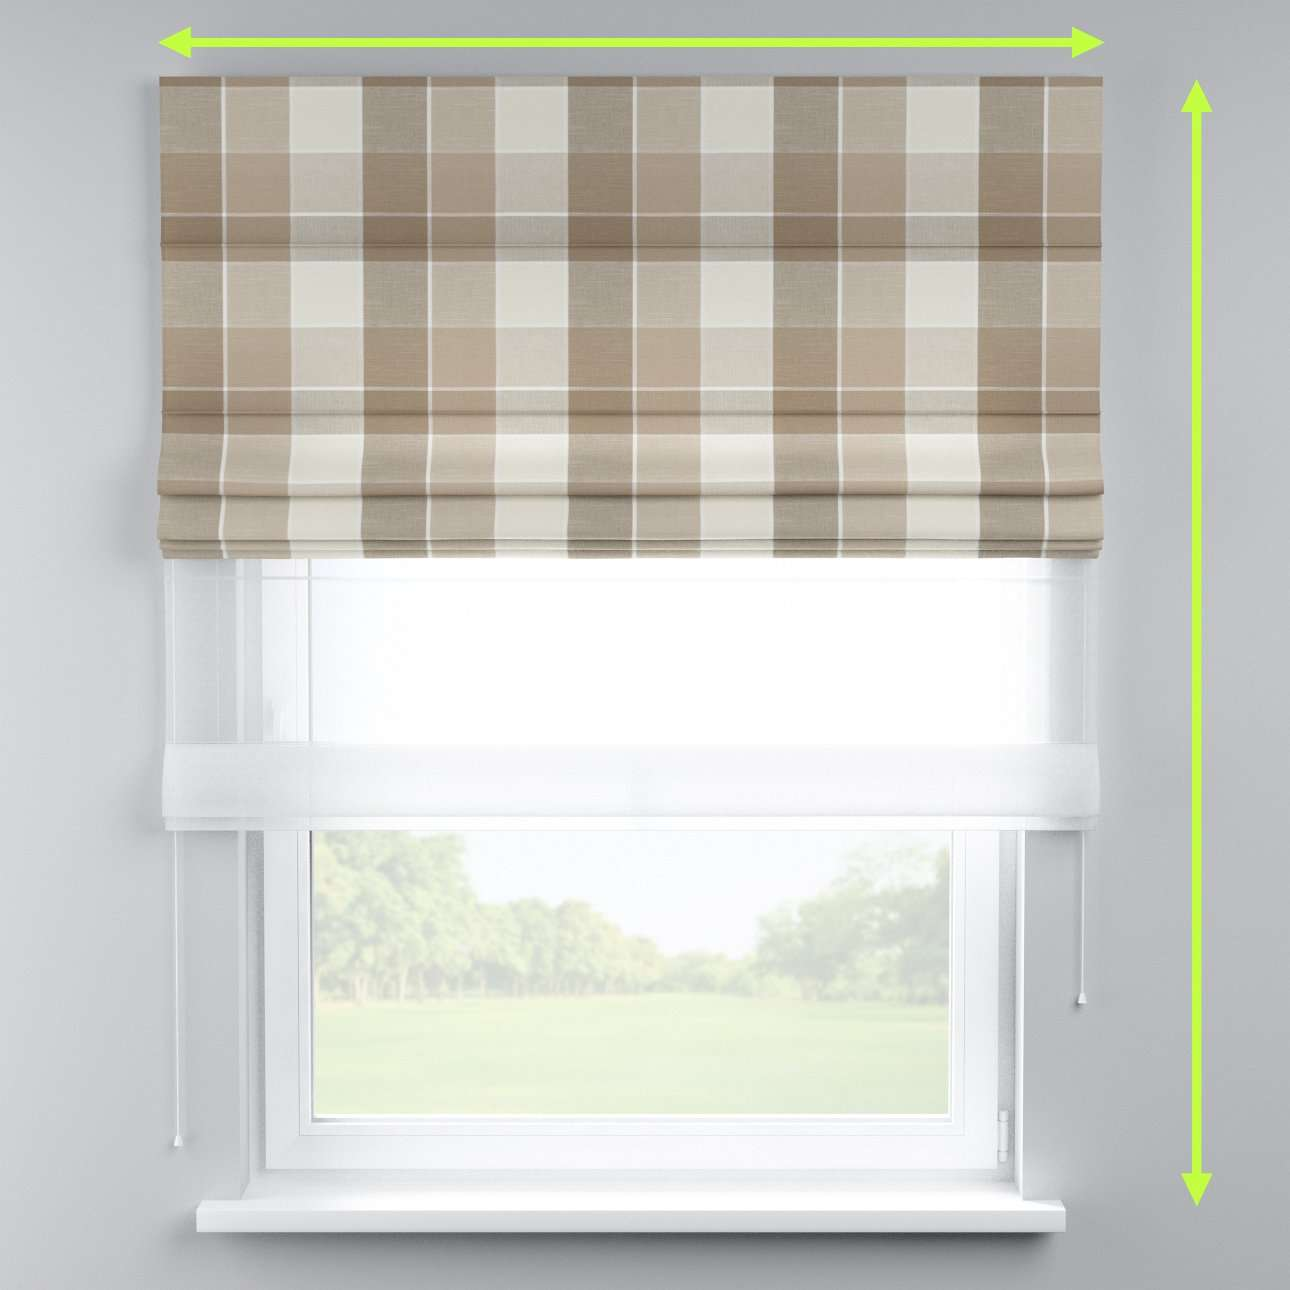 Voile and fabric roman blind (DUO II) in collection Cardiff, fabric: 136-28